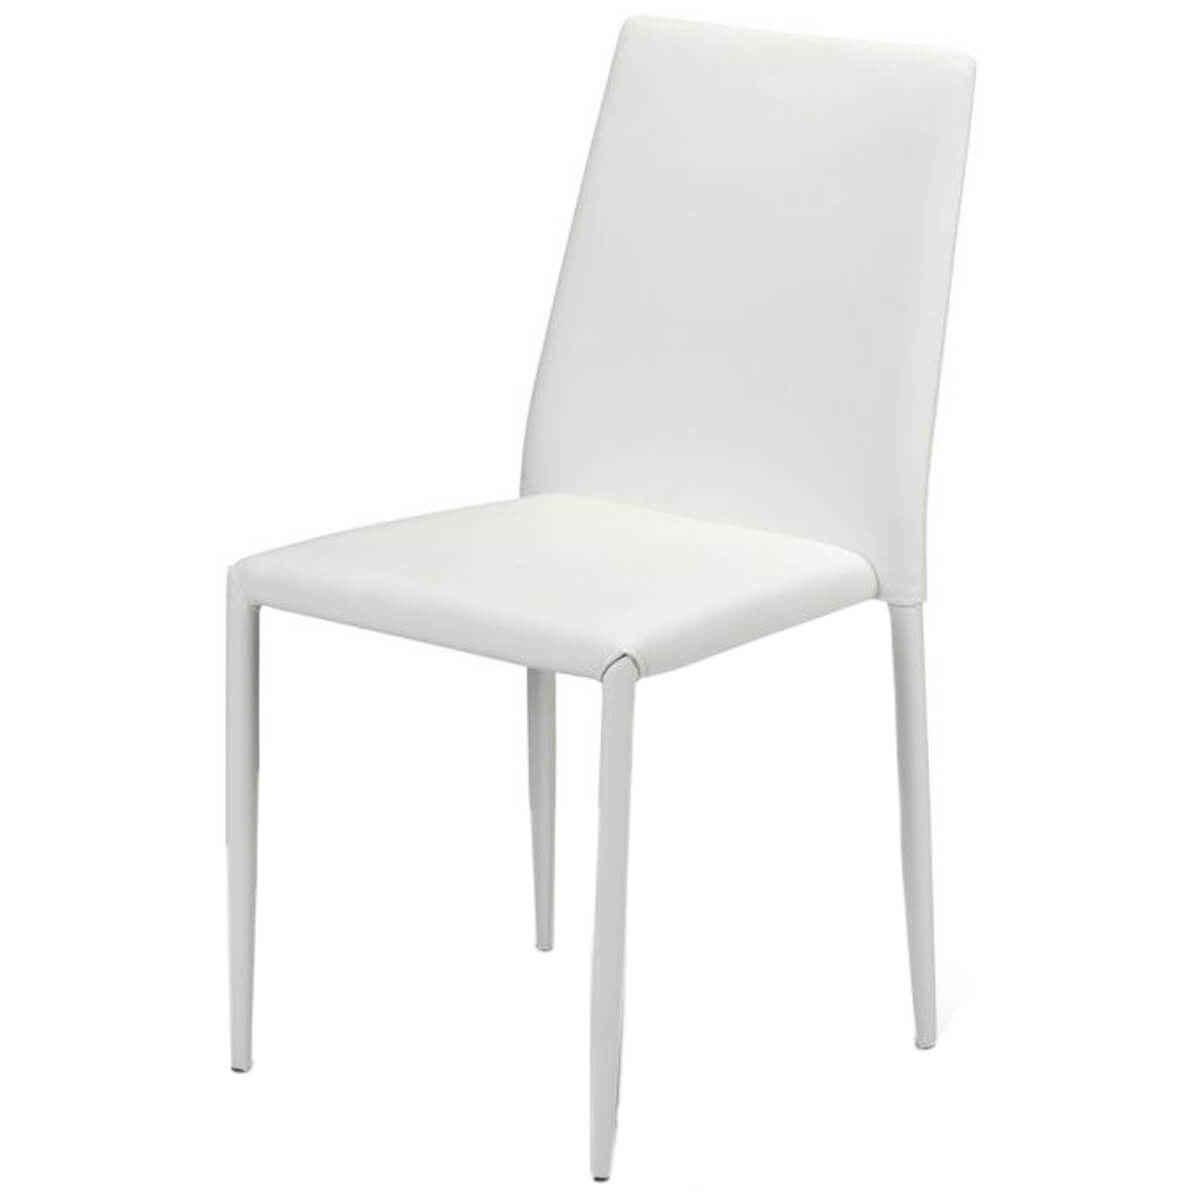 stacking dining chairs uk office chair weight capacity jazz white stackable room furniture